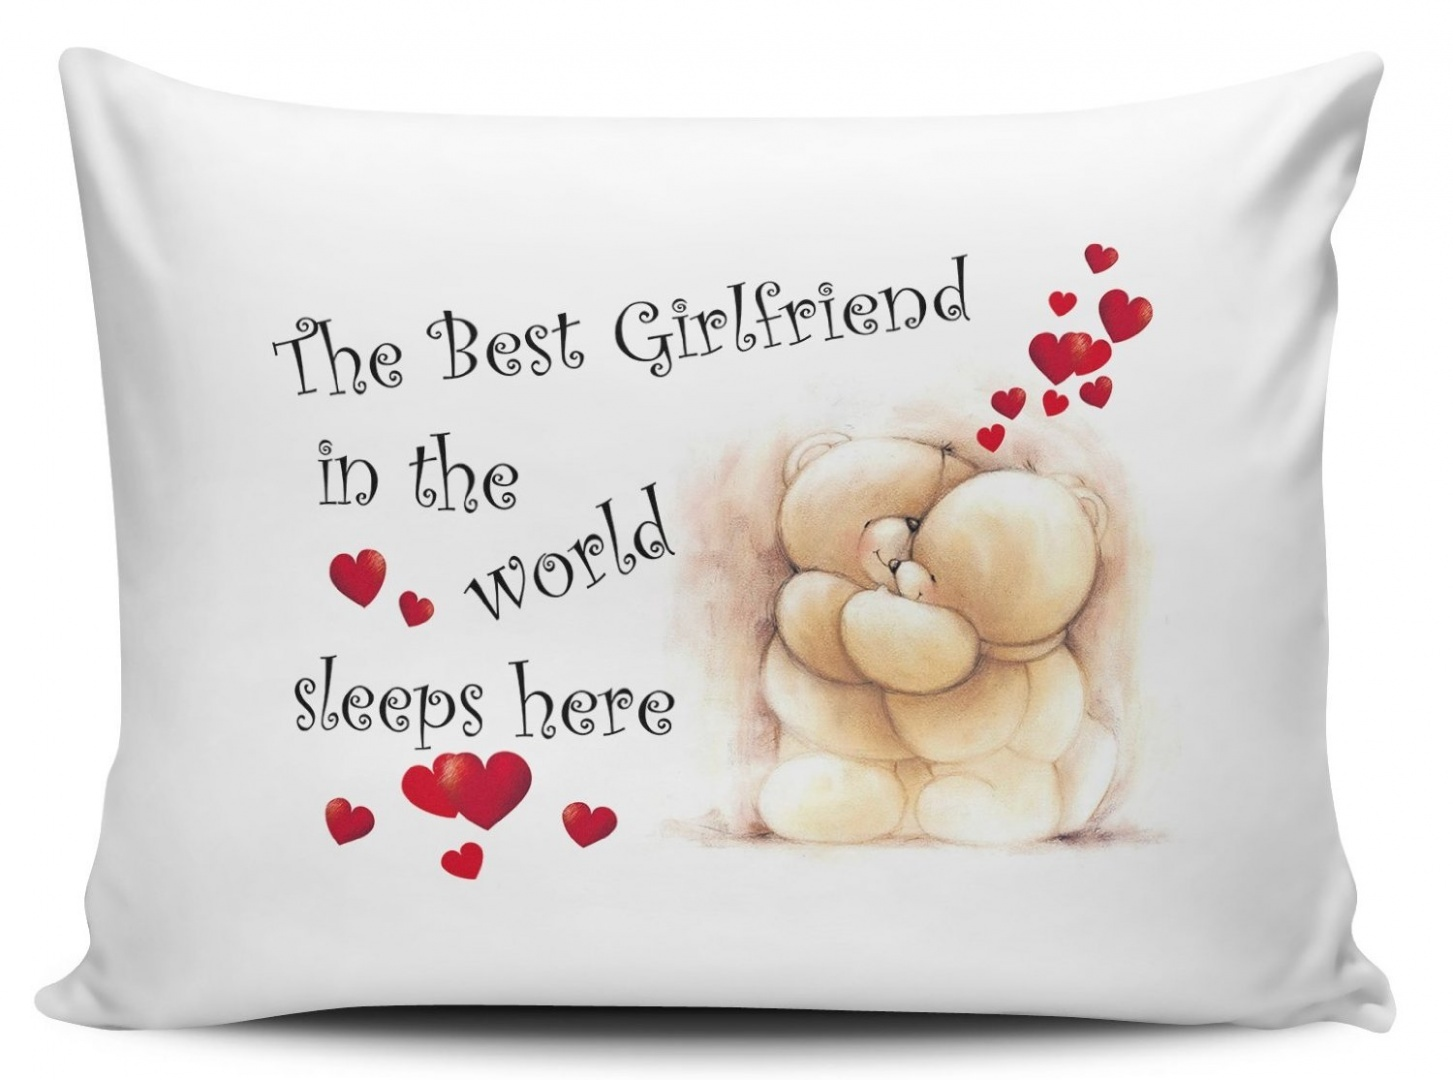 Cute Pillow Cases Nz : The Best Girlfriend In The World Sleeps Here Pillow Cases - Cute Bears 11street Malaysia ...